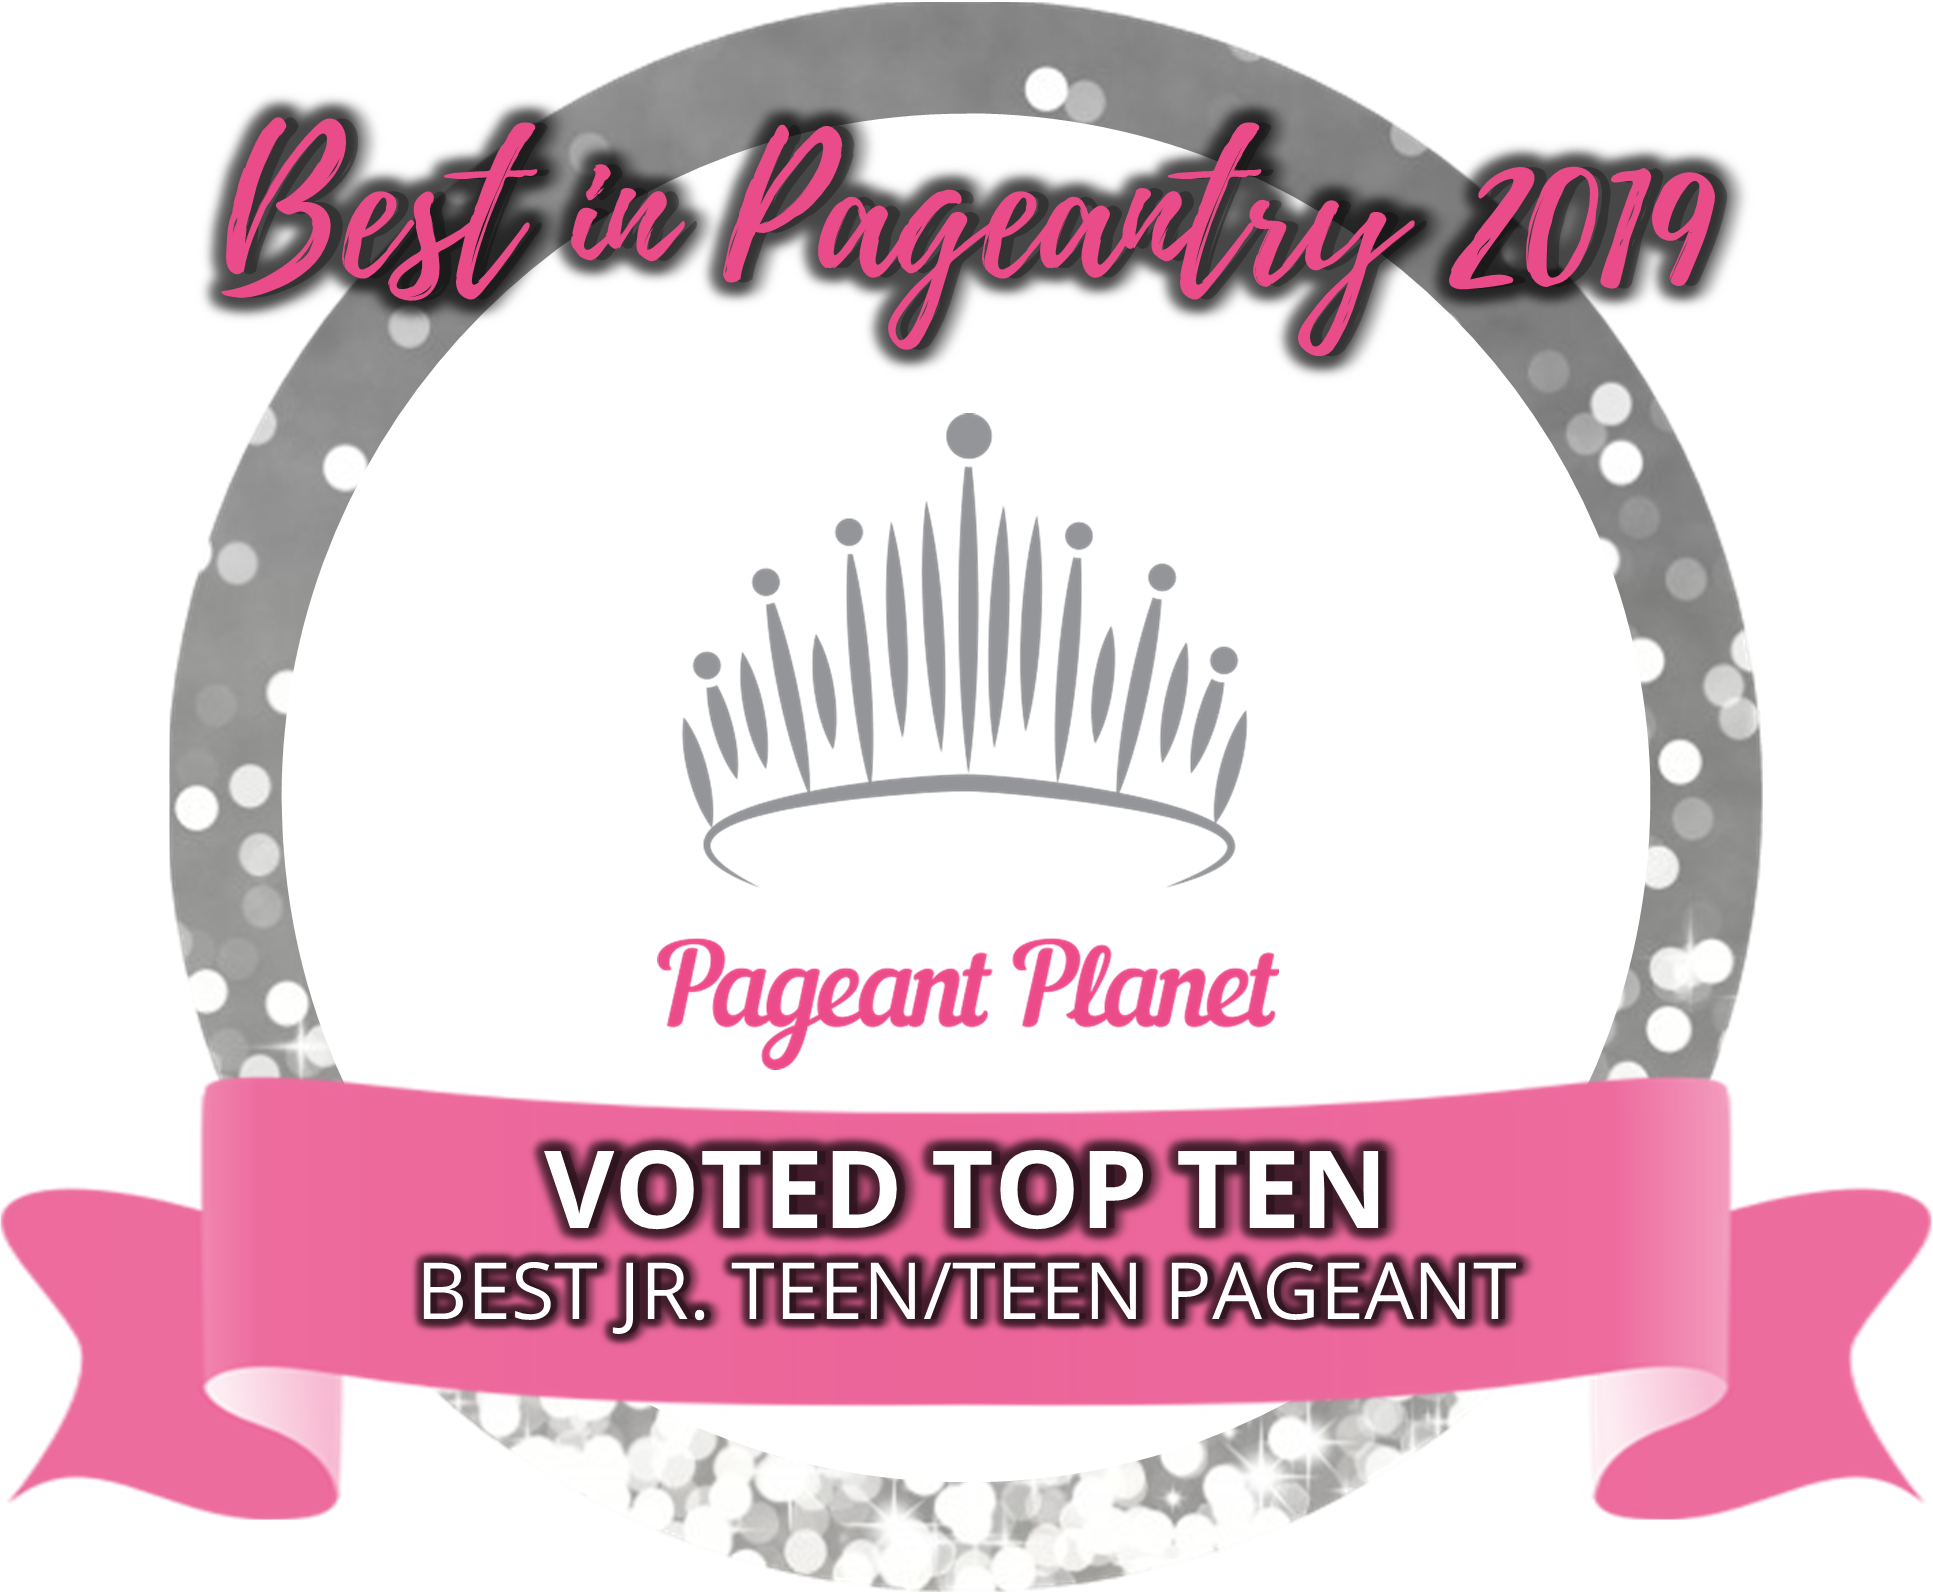 Top 10 Teen Pageants of 2019